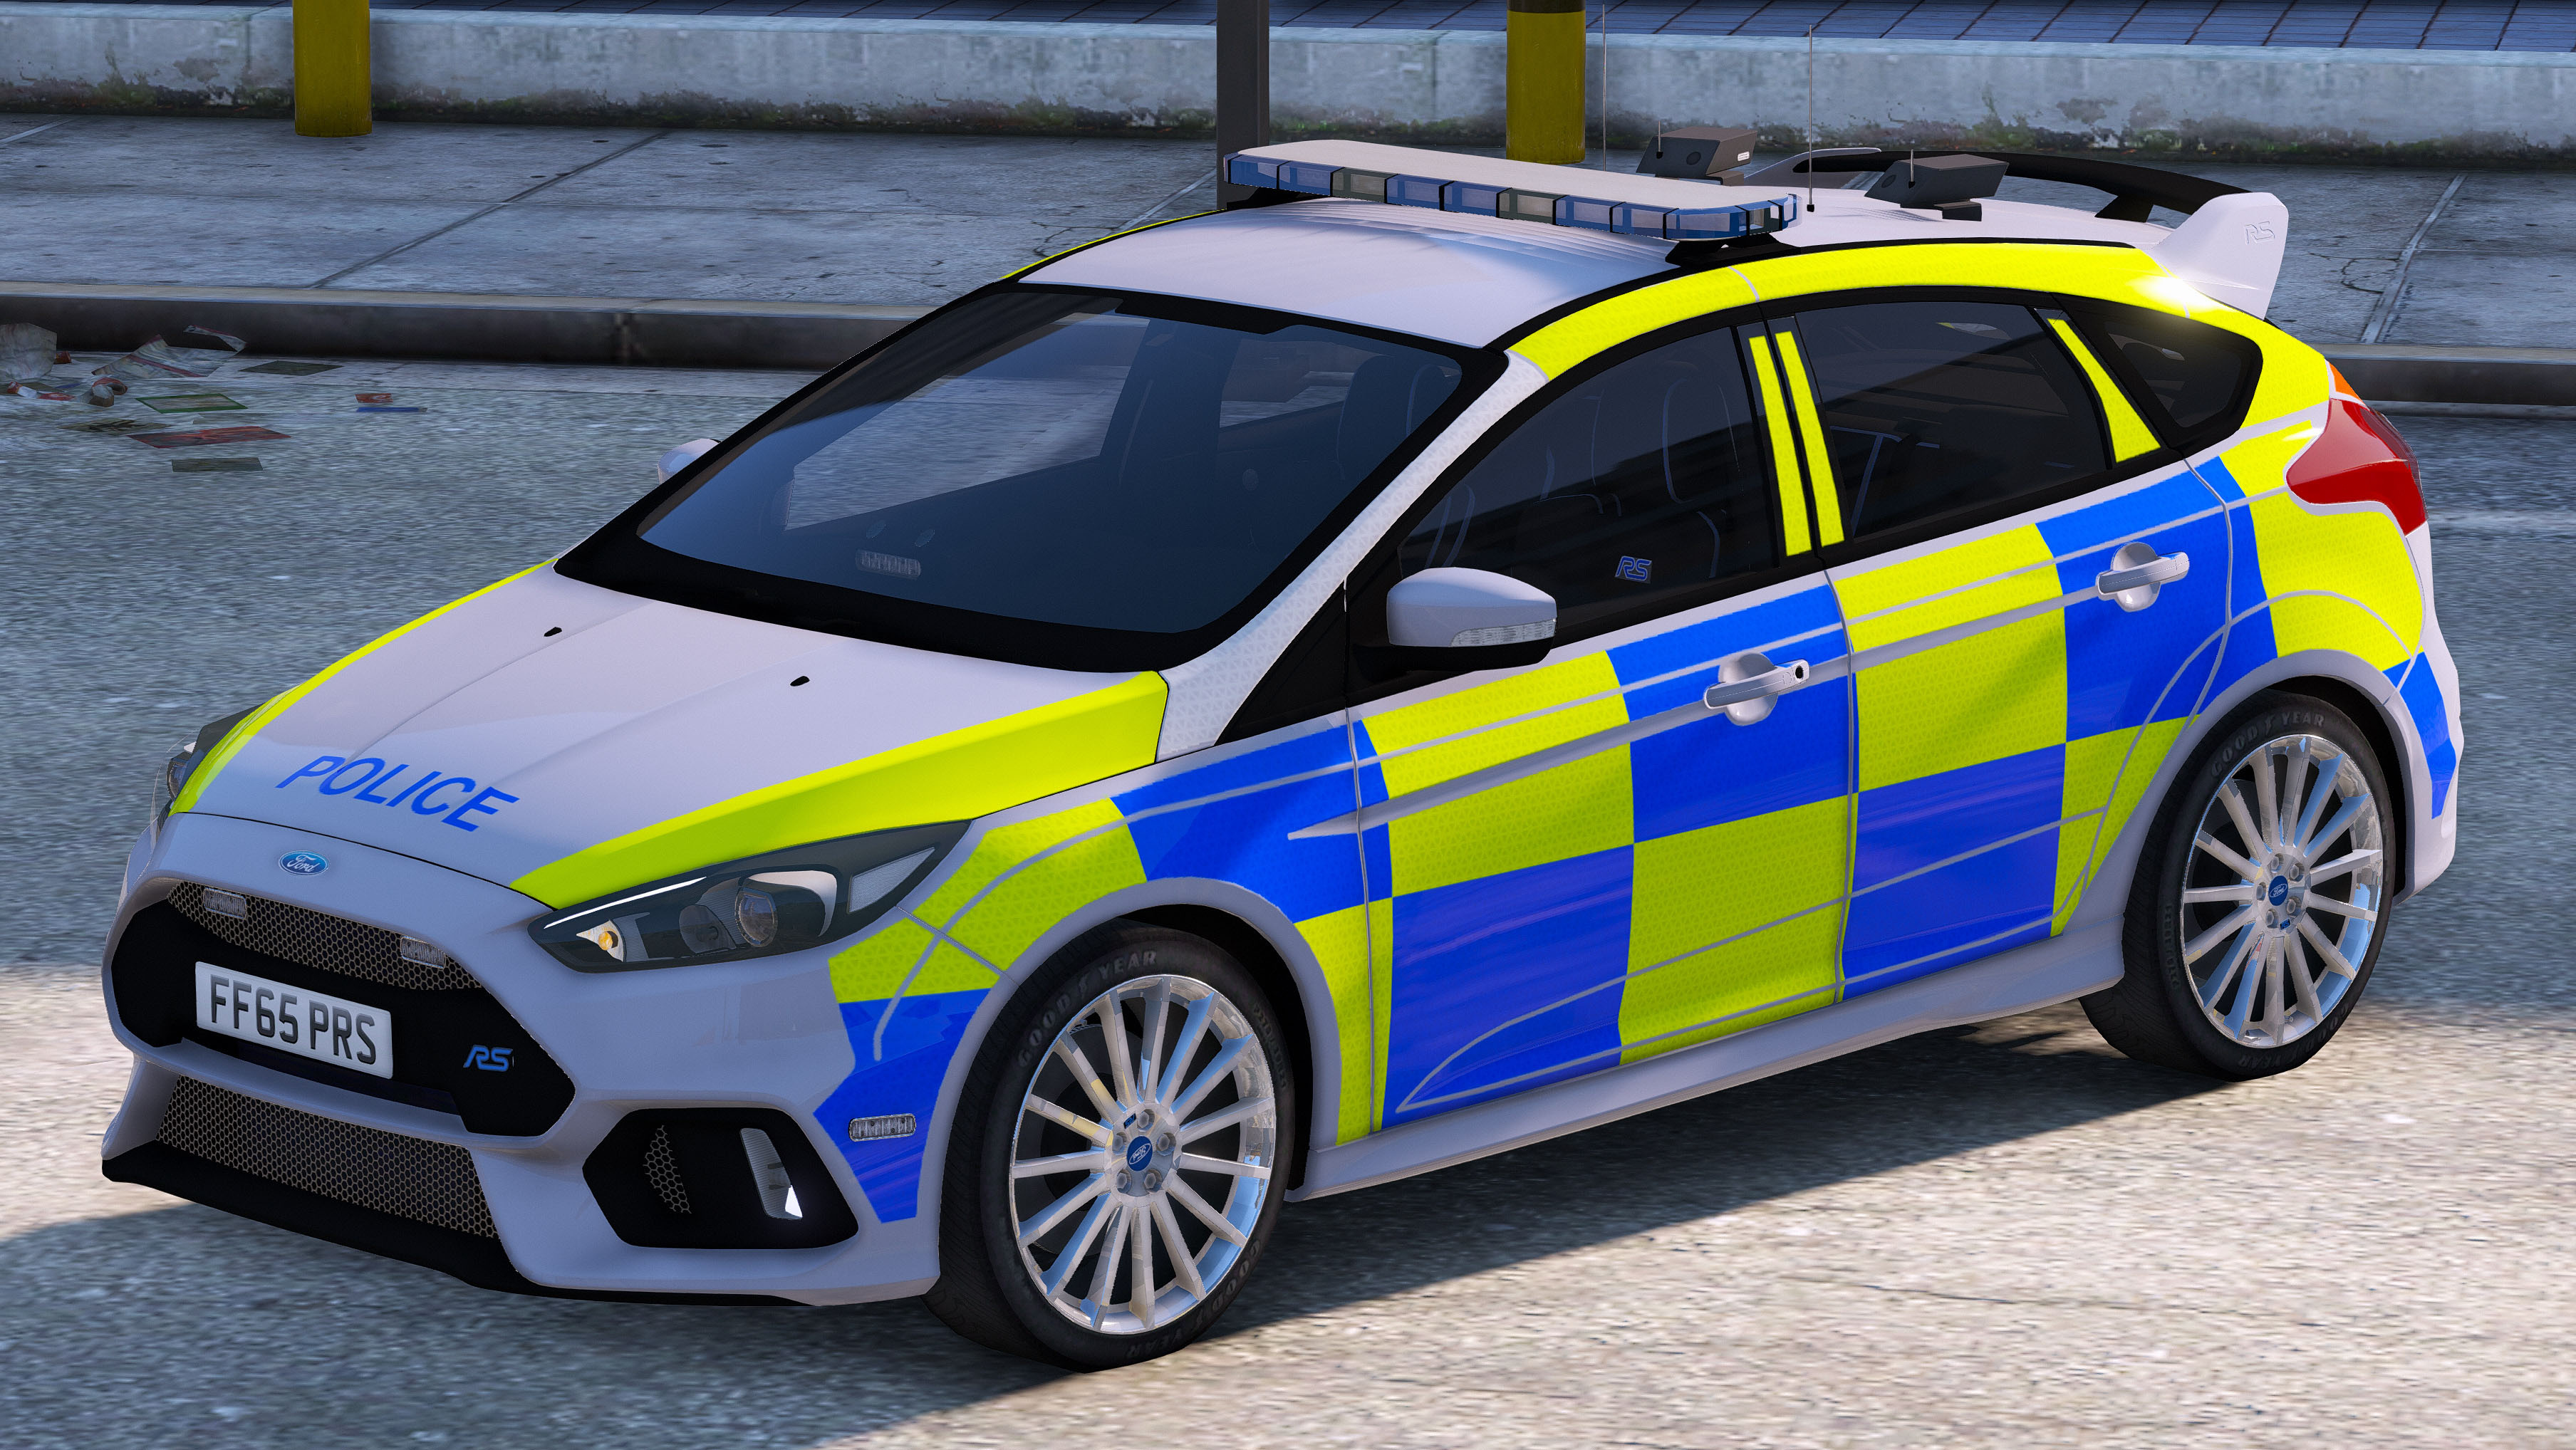 4567e9 gta5 2016 02 18 15 31 50 360 & 2016/2017 Police Ford Focus RS (Marked/Unmarked) - GTA5-Mods.com markmcfarlin.com